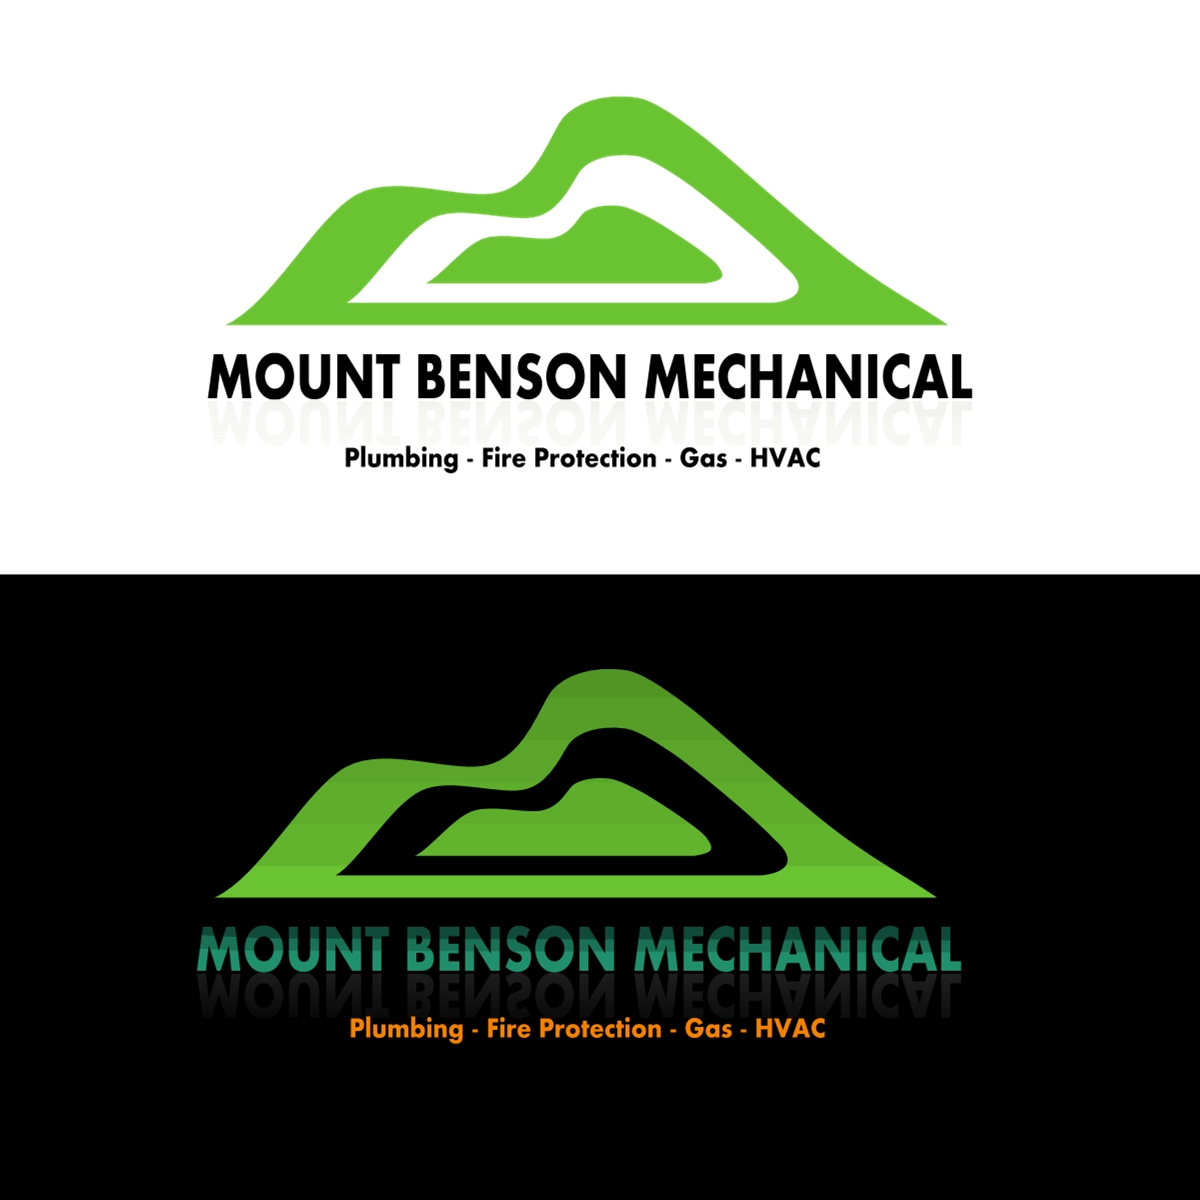 Logo Design by Joseph calunsag Cagaanan - Entry No. 38 in the Logo Design Contest Mount Benson Mechanical.